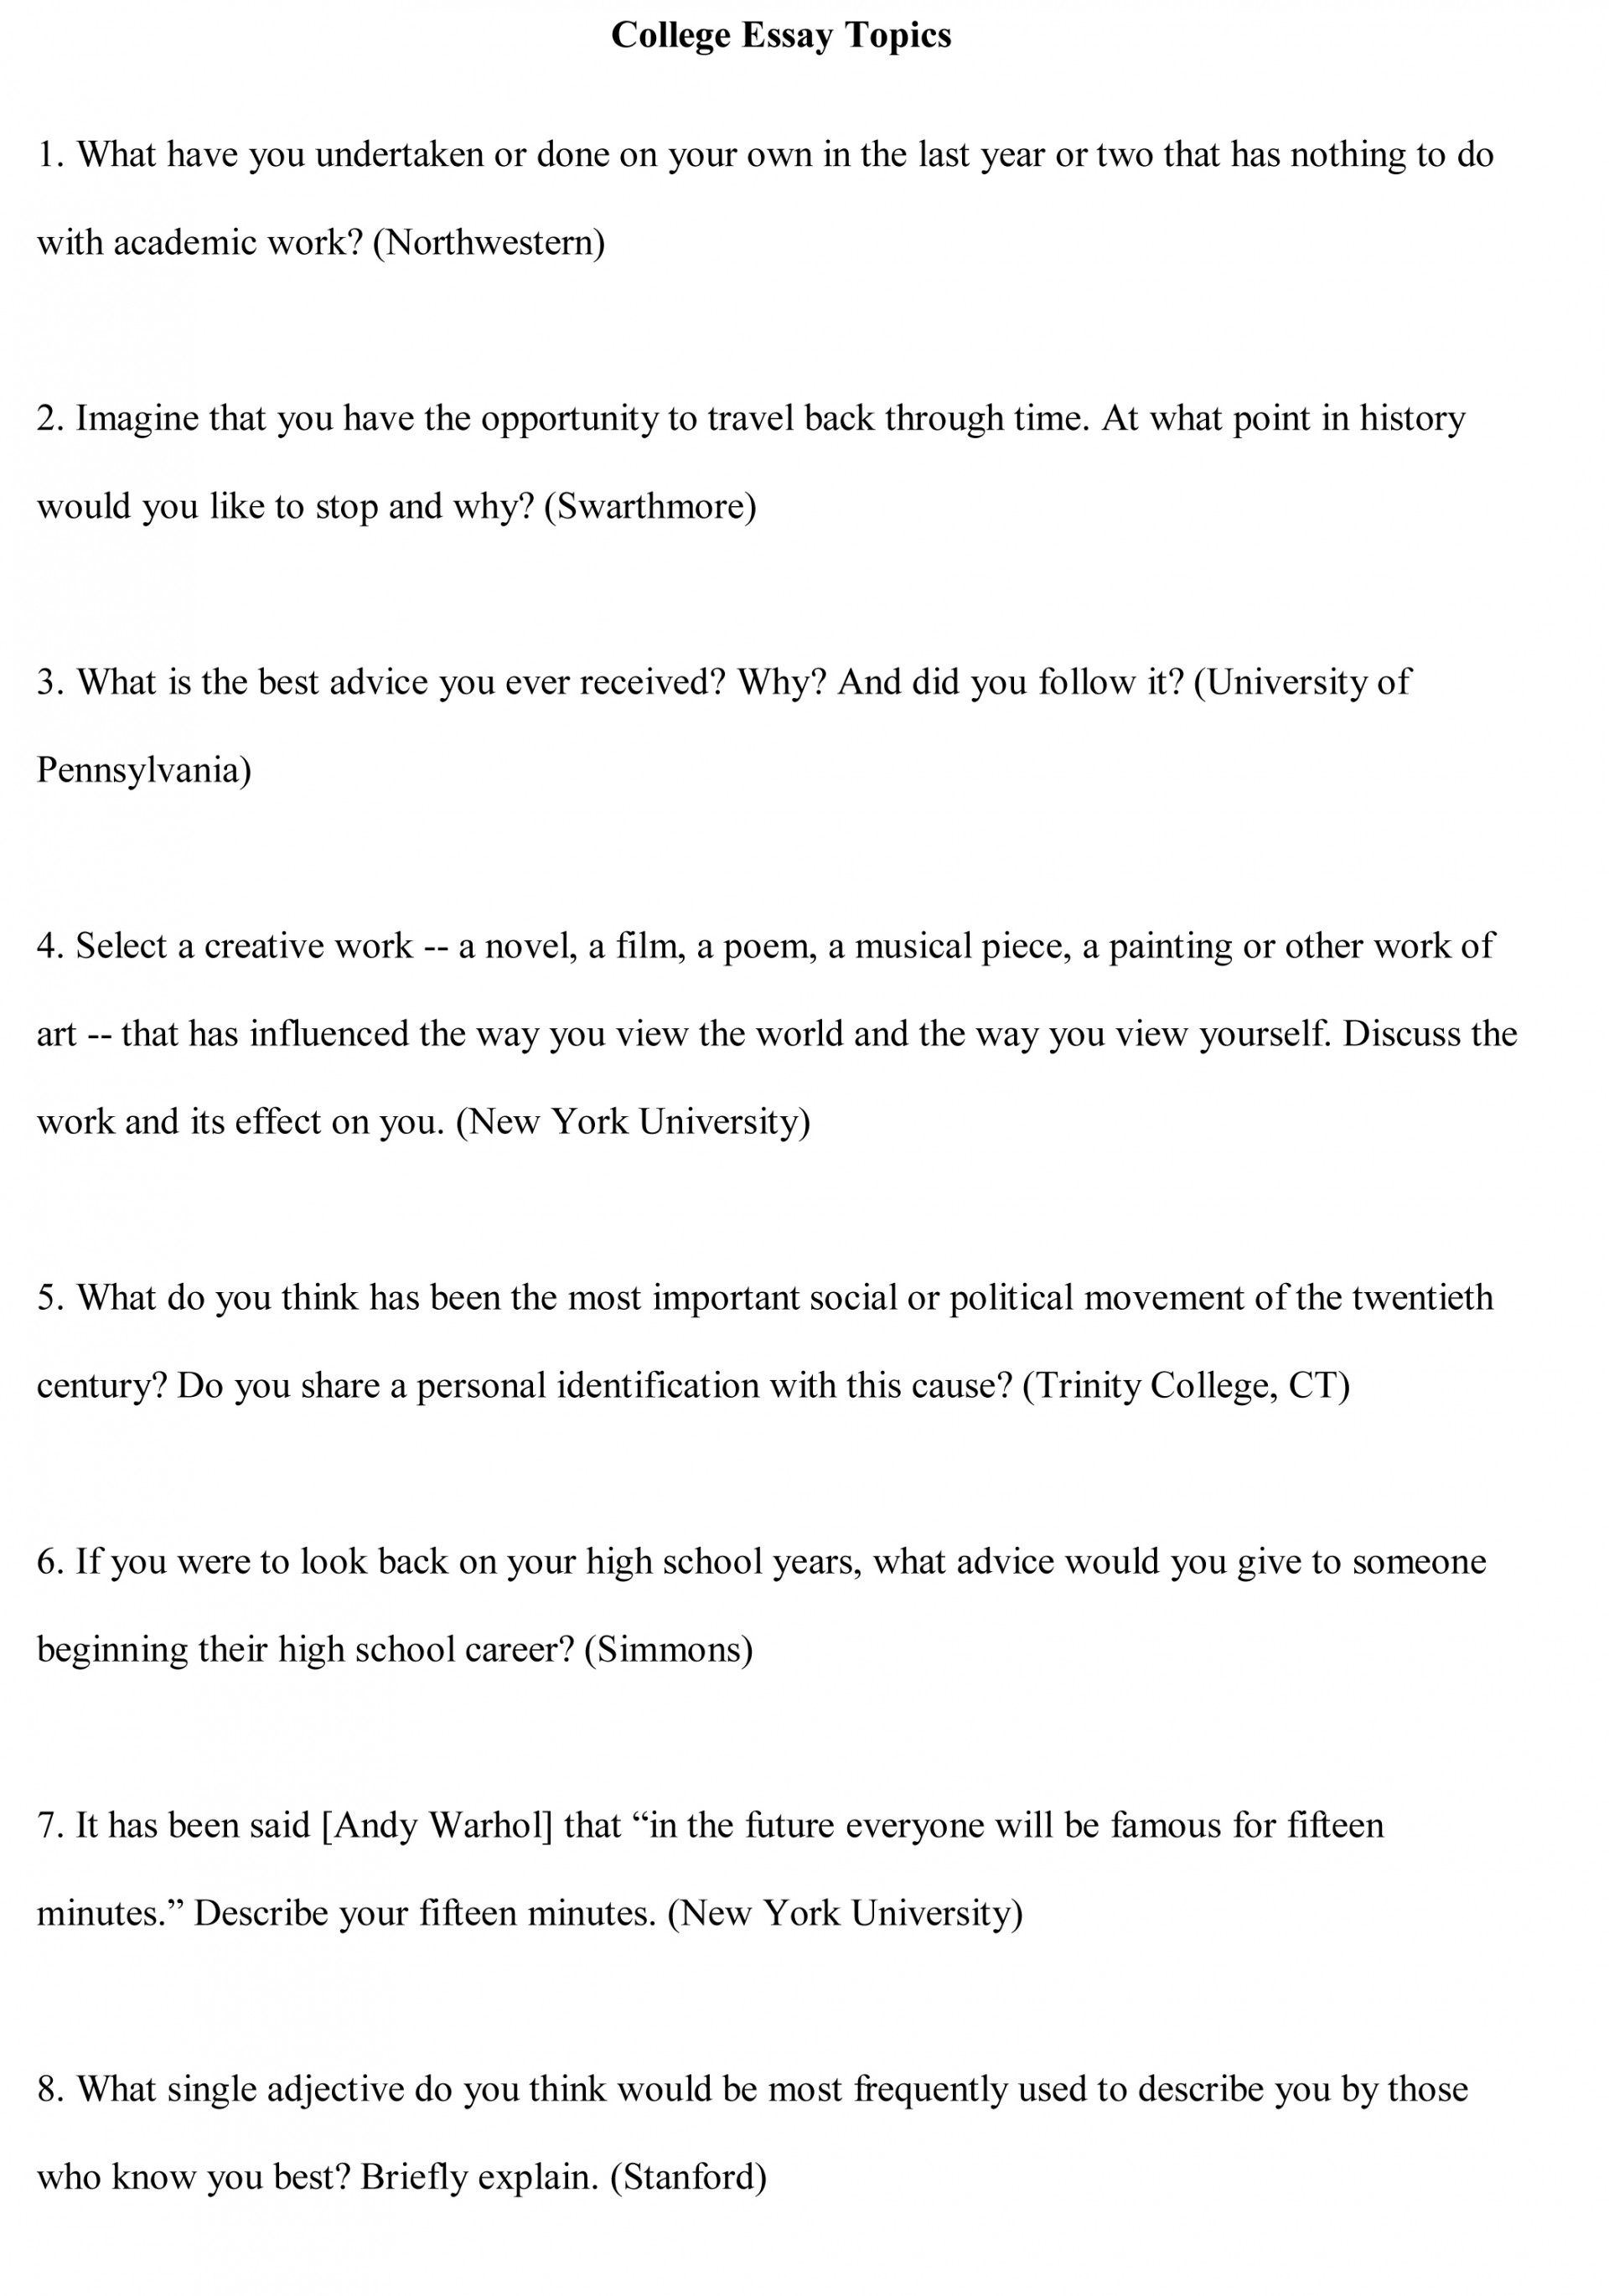 016 College Essay Topics Free Sample Example Argumentative Rare Prompts Persuasive For Students Unique Writing 6th Grade 1920